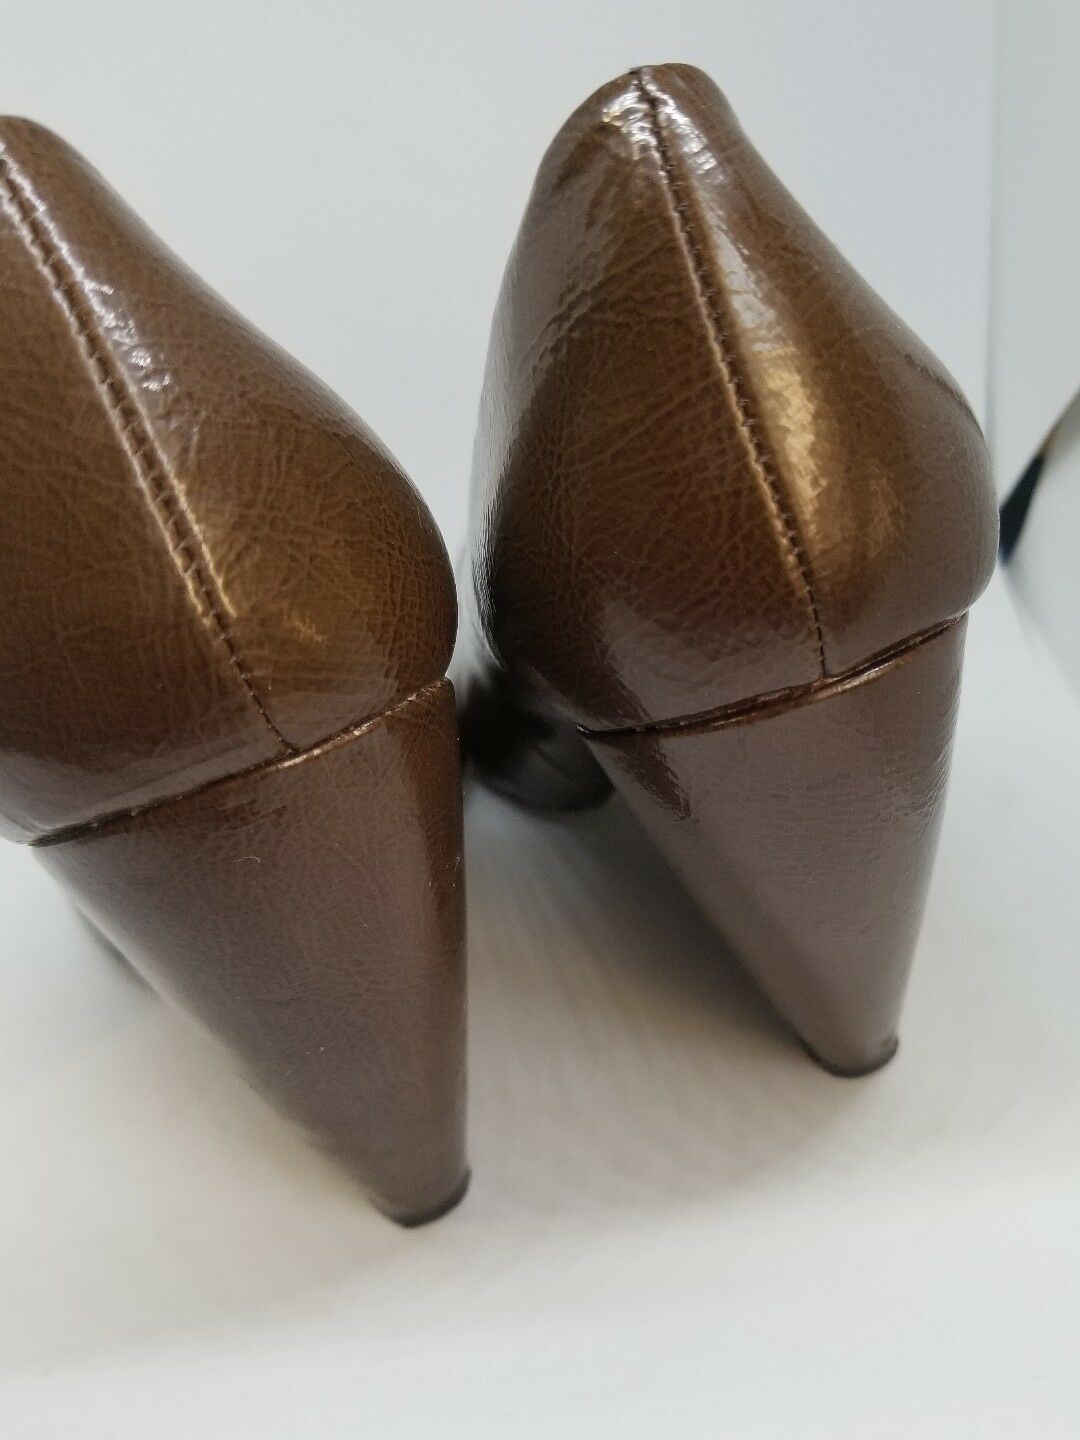 Seychelles round Shoes toe  brown Dress Shoes round patent Leather 8.5 e7cb22